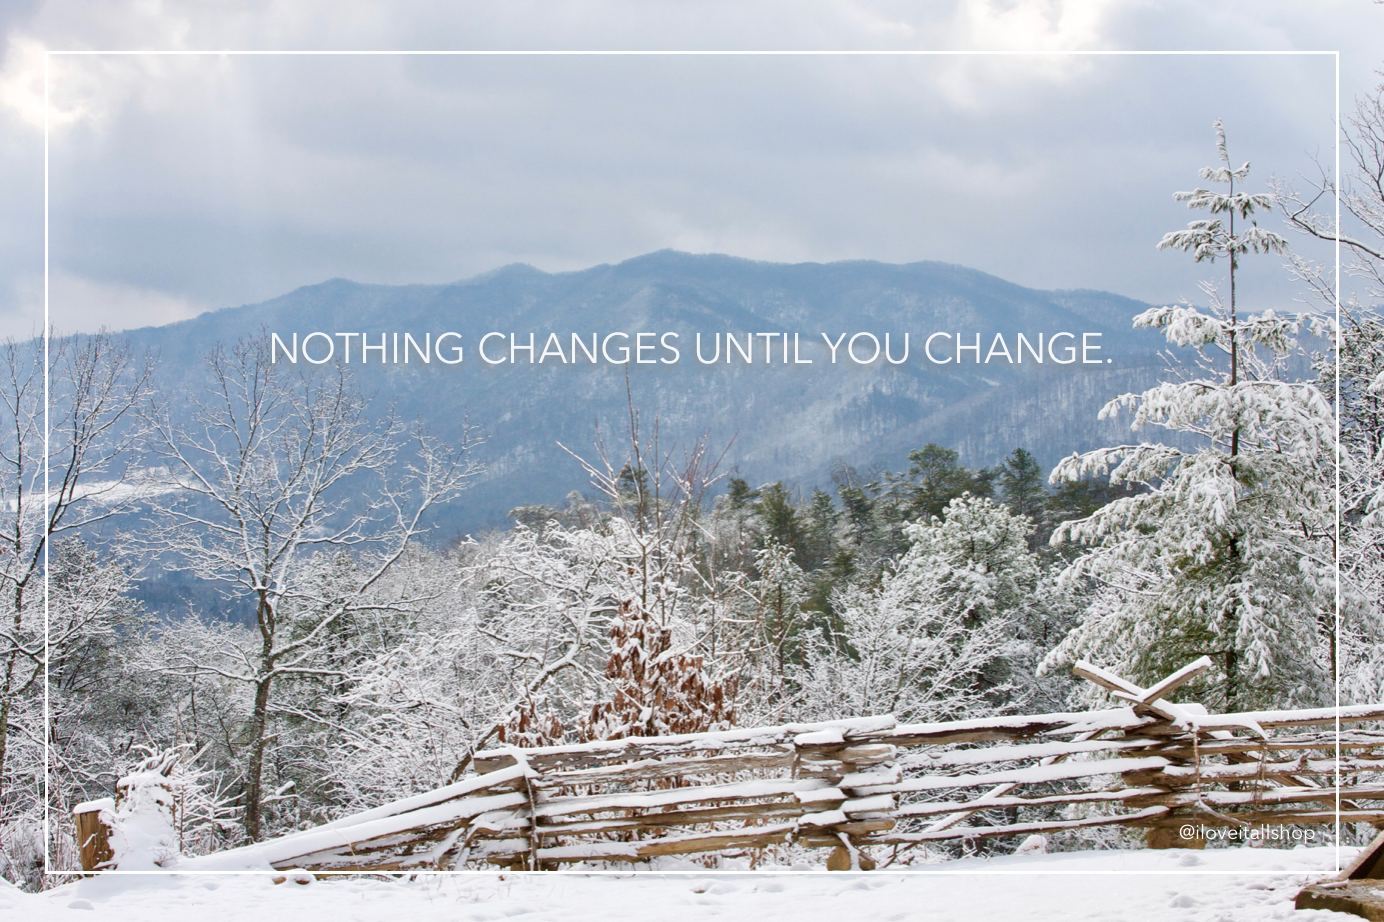 #change #quotes #motivation #smoky mountains #snow #sky